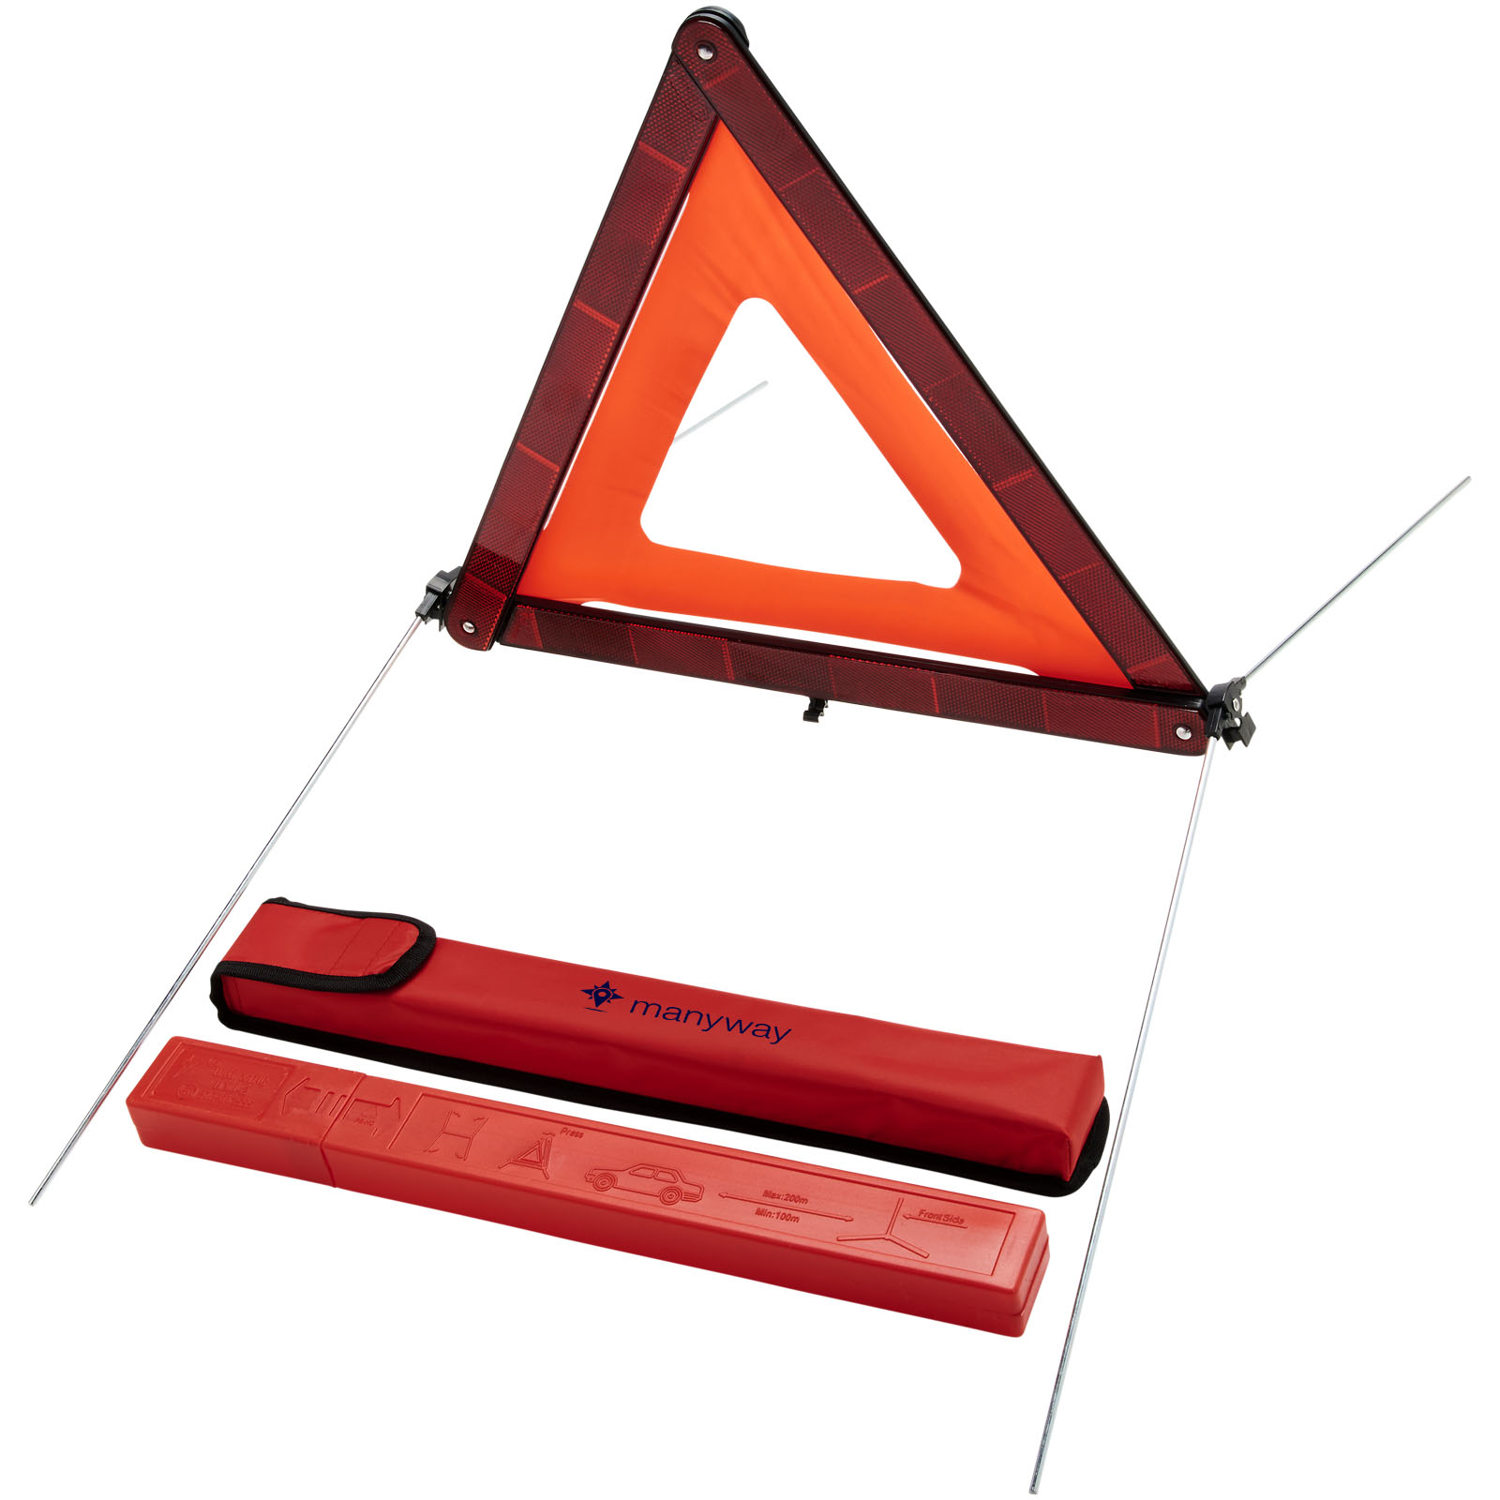 Carl Safety Triangle In Storage Pouch